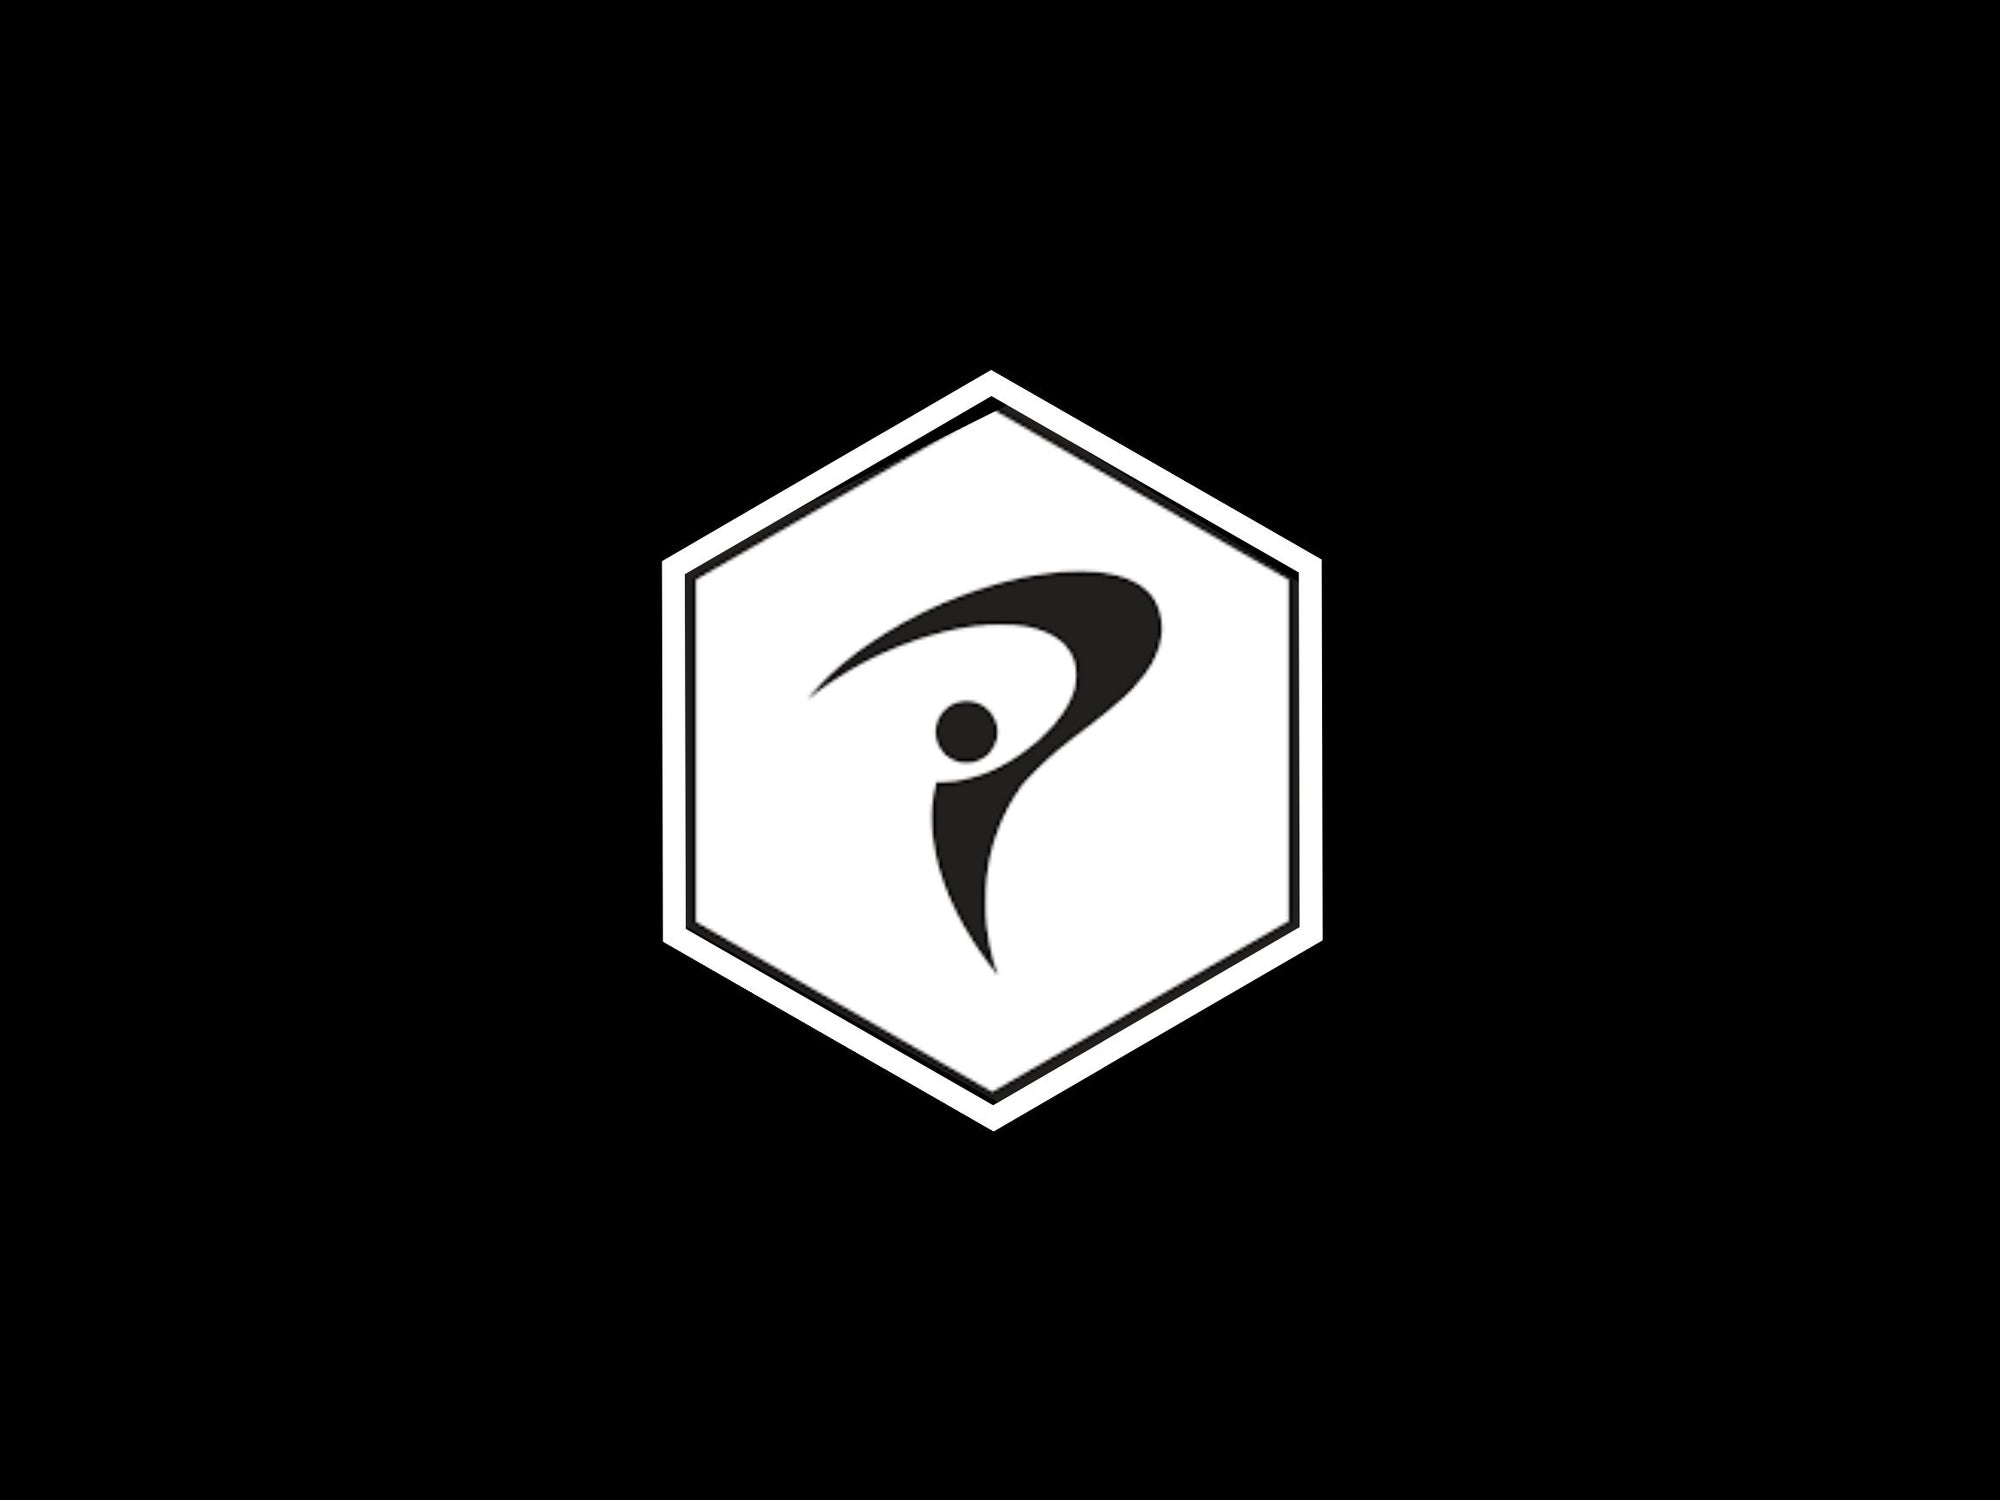 TPI (Titleist Performance Institute) logo of an abstract golfer in a hexagonal shape logo.